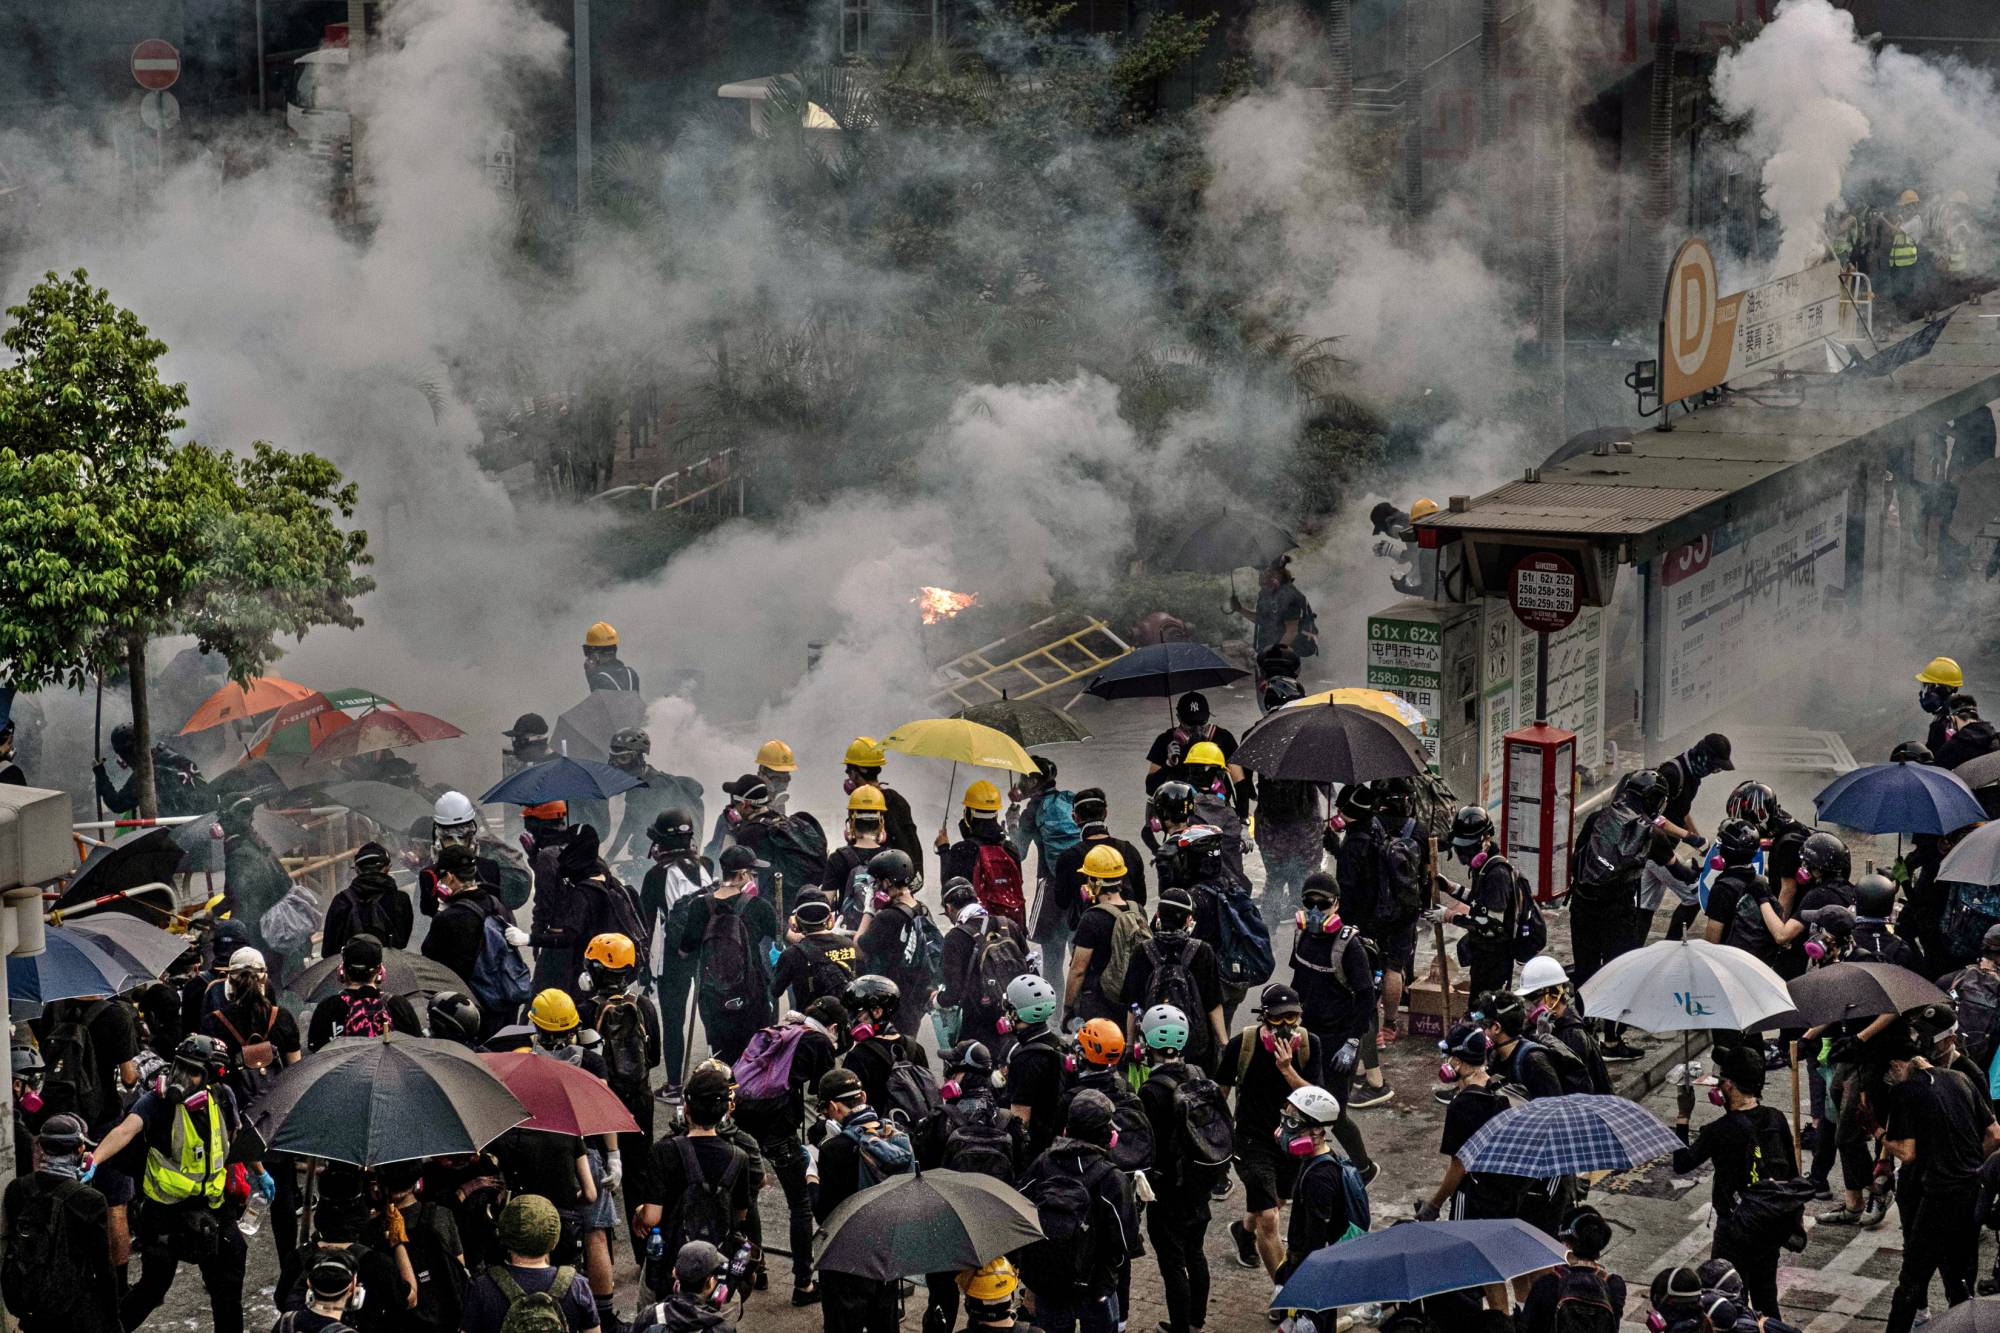 Pro-democracy protesters near a subway station in Hong Kong in October 2019 | LAM YIK FEI / THE NEW YORK TIMES